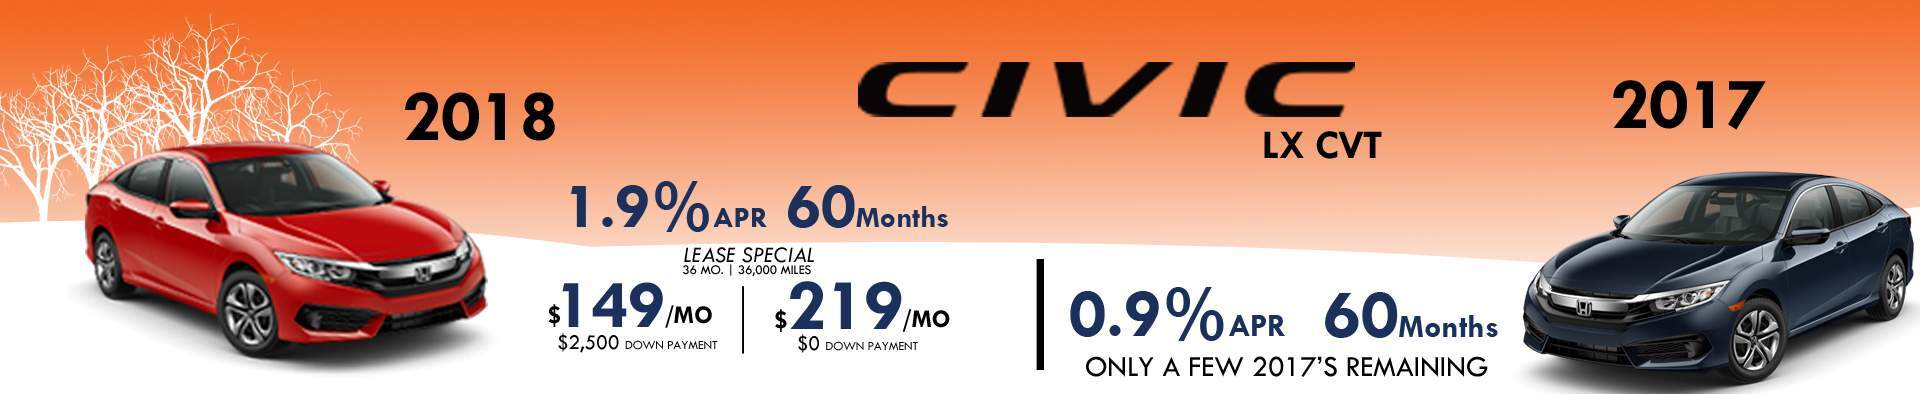 2018 Civic January Special 1.9% for 60 Months